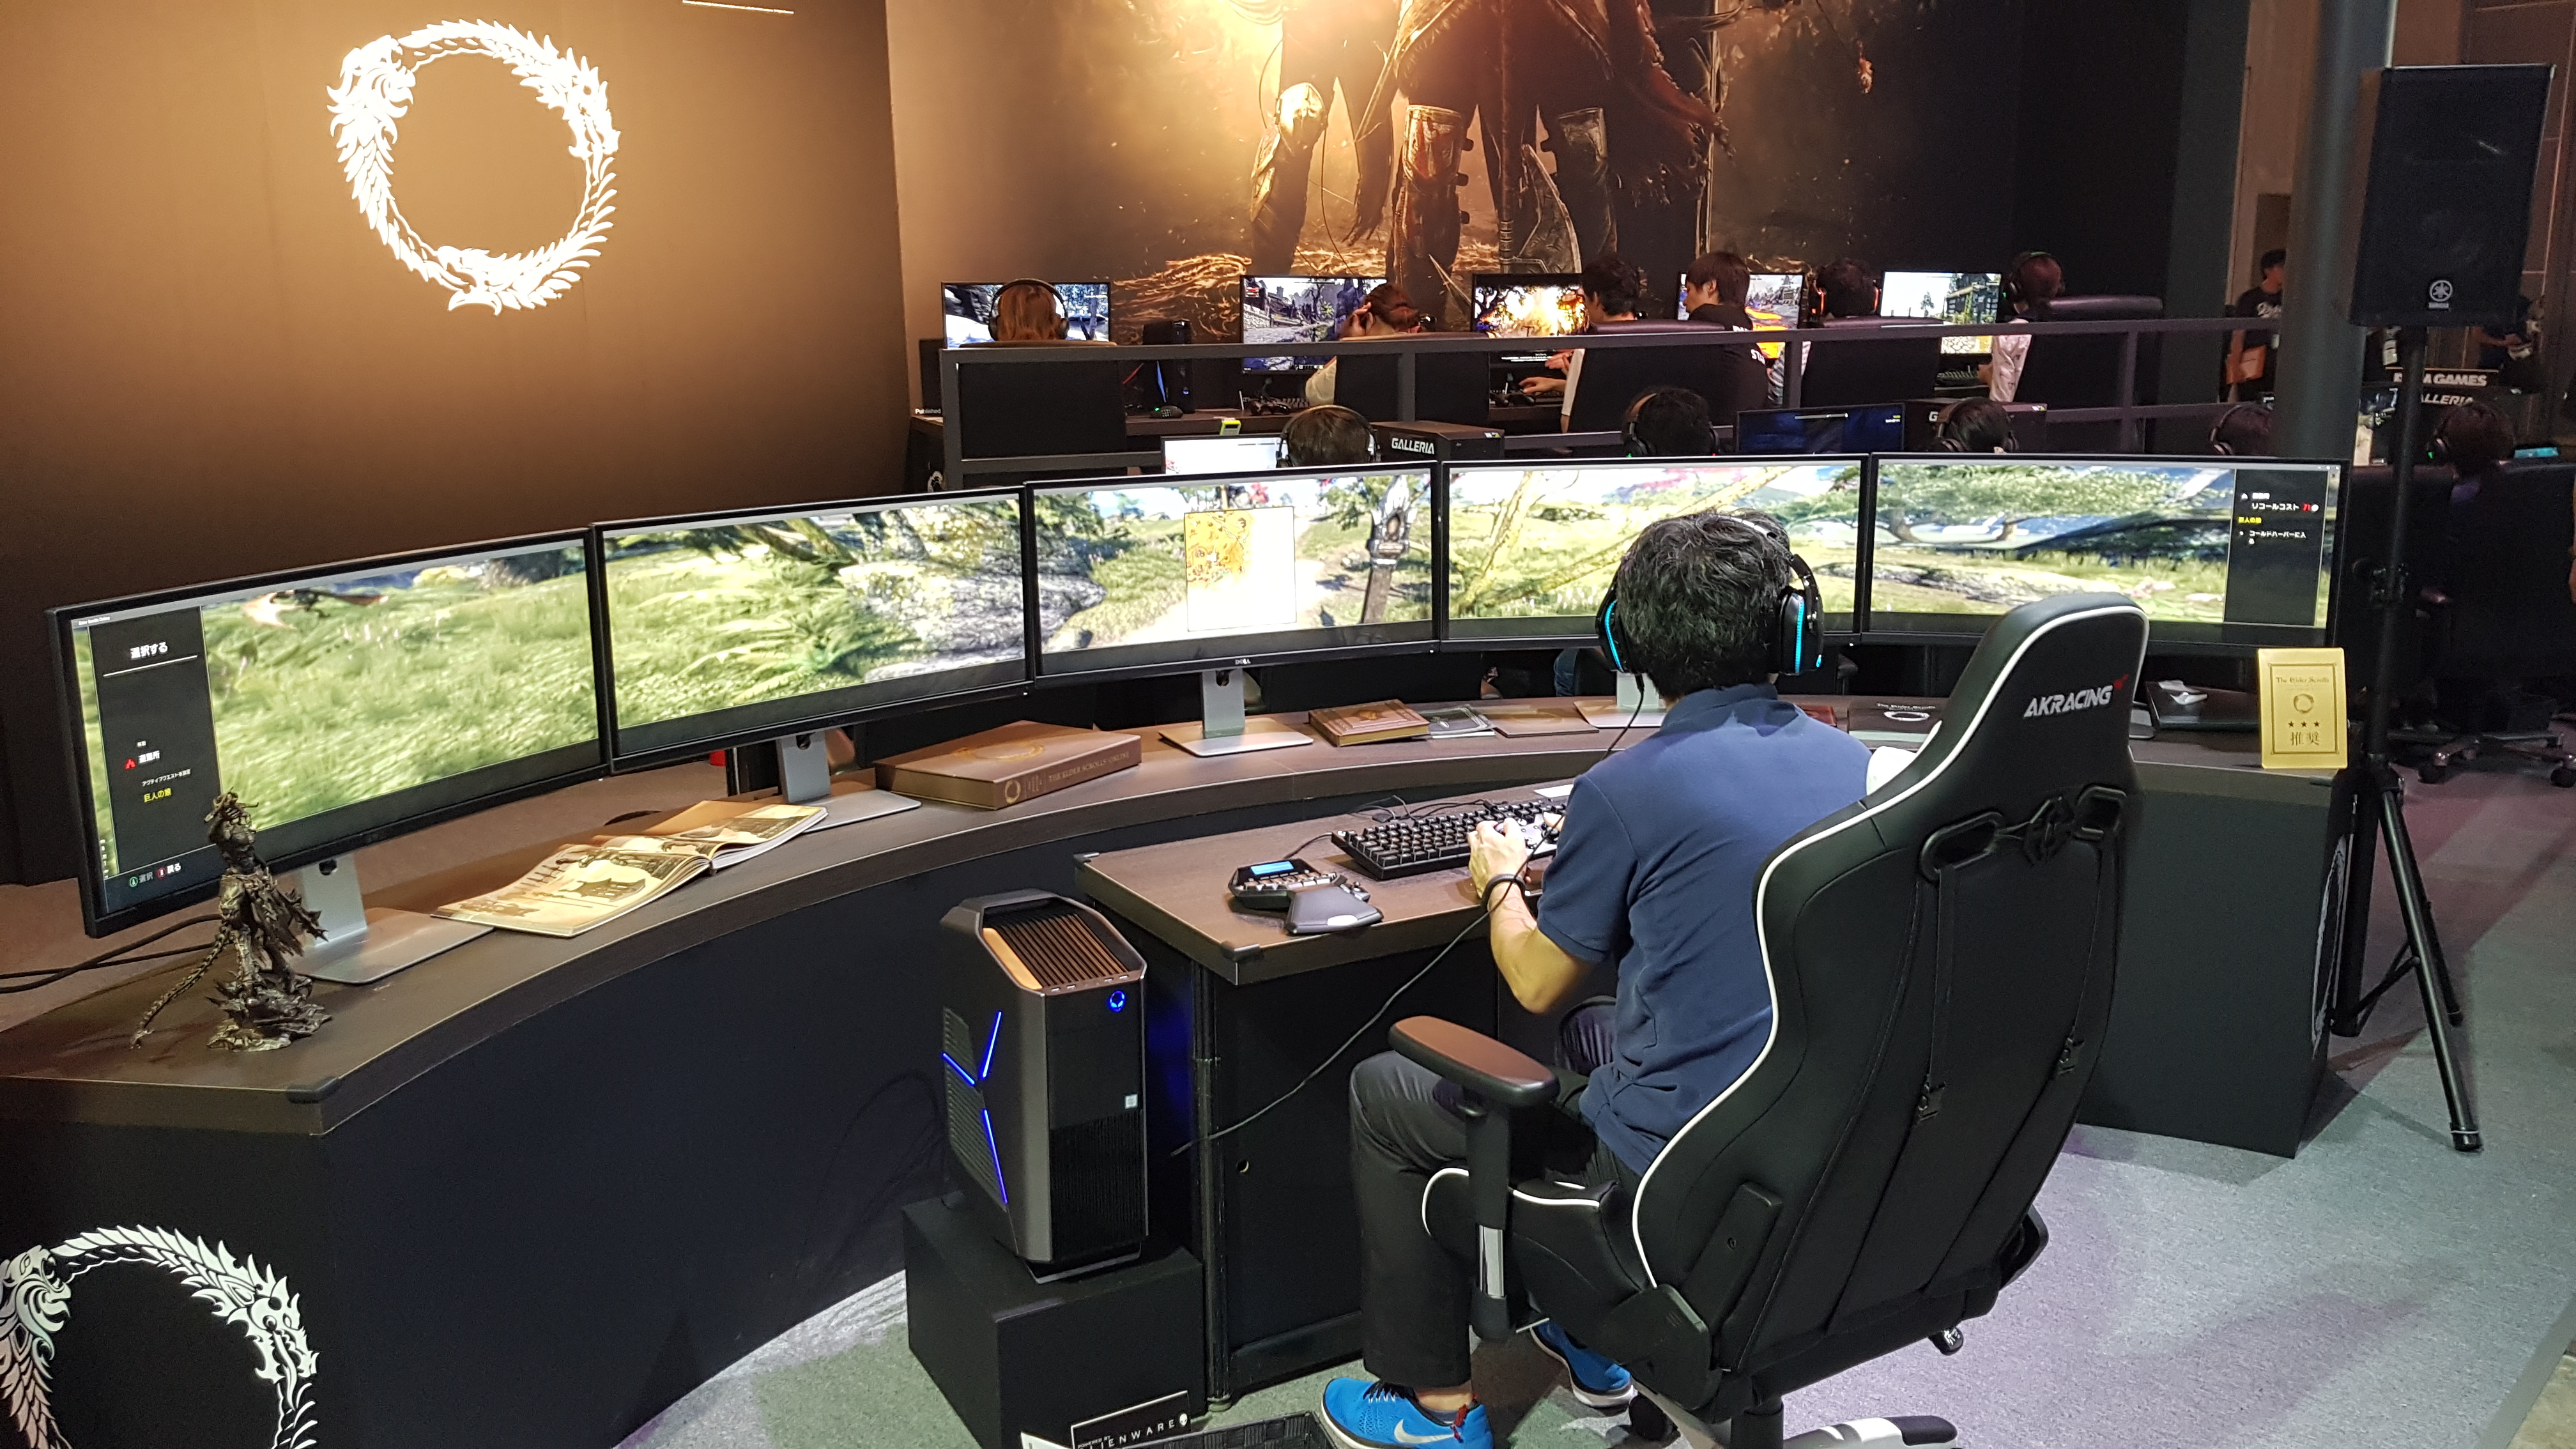 Insane Gaming PC setup spotted at Tokyo Game Show - GameAxis